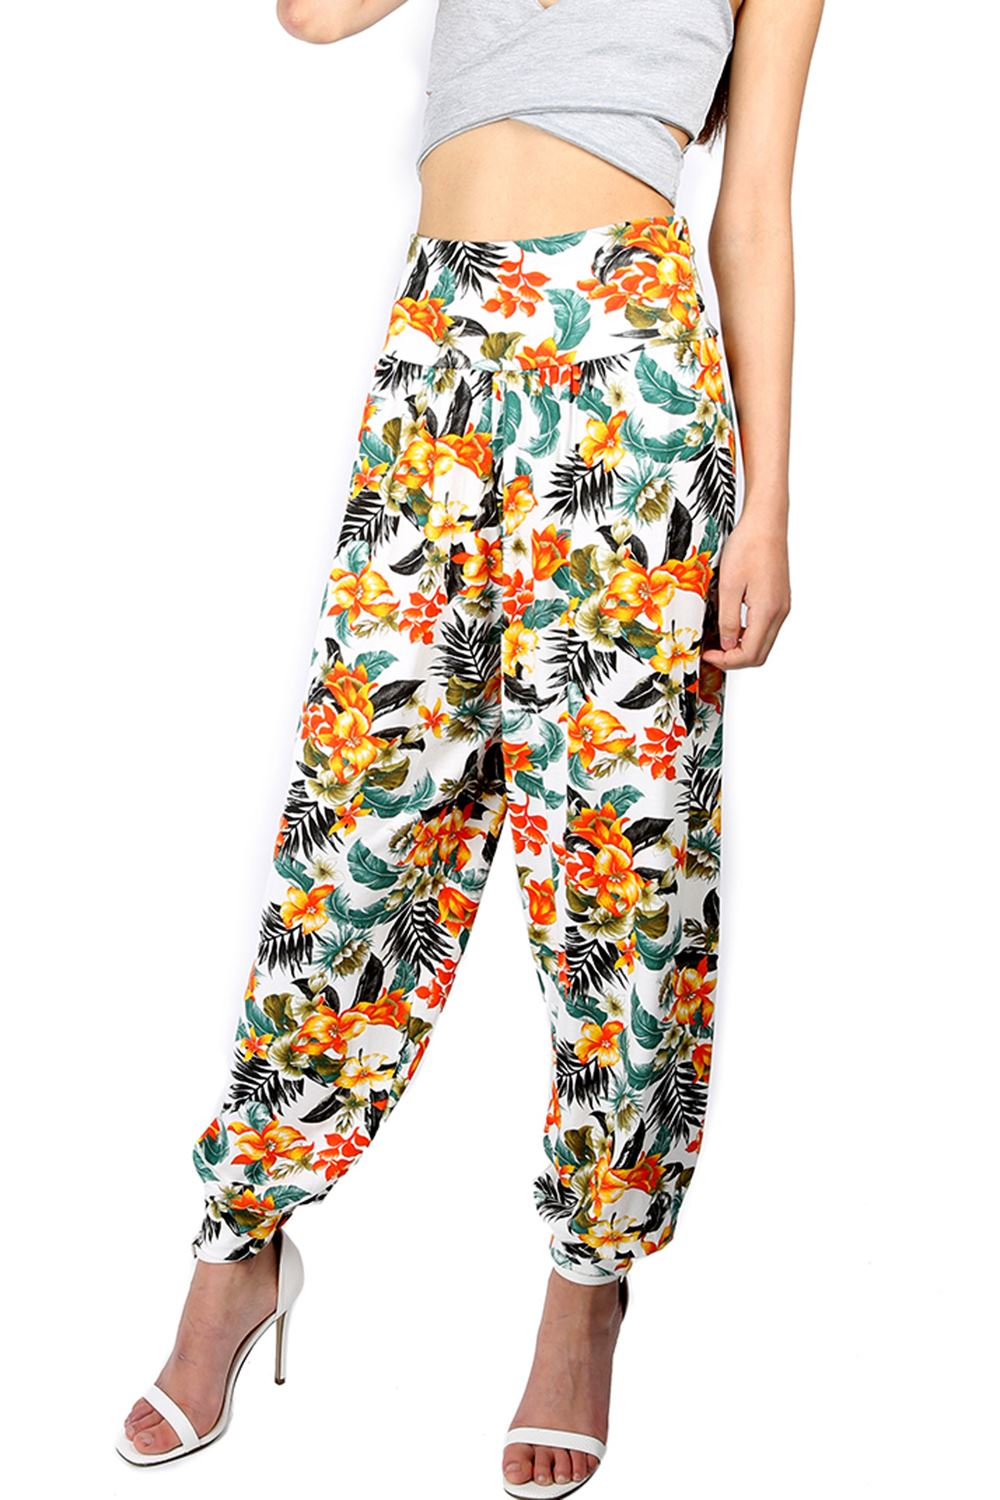 Hawaiian Print Pants ($ - $): 30 of items - Shop Hawaiian Print Pants from ALL your favorite stores & find HUGE SAVINGS up to 80% off Hawaiian Print Pants, including GREAT DEALS like Rip Curl Hawaiian Print Pants | Color: Cream | Size: S ($).